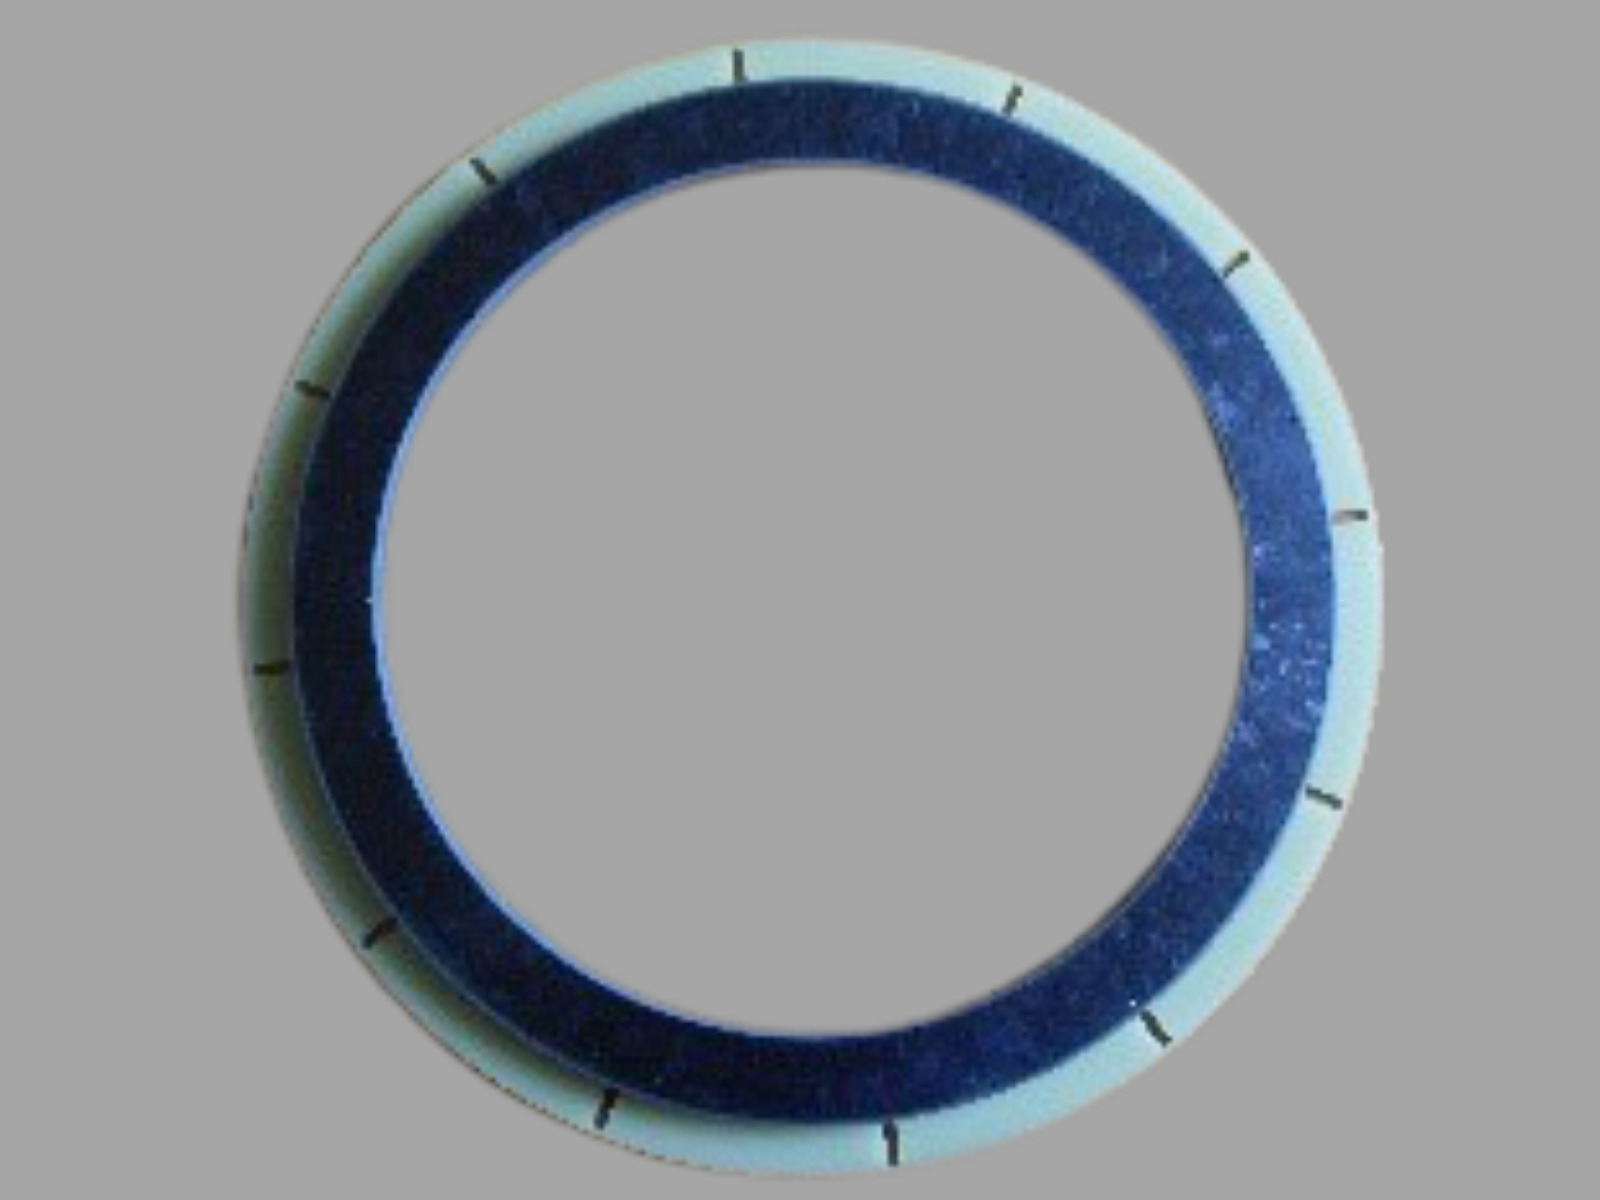 G-10 reinforced and assembled bulk HTS ring